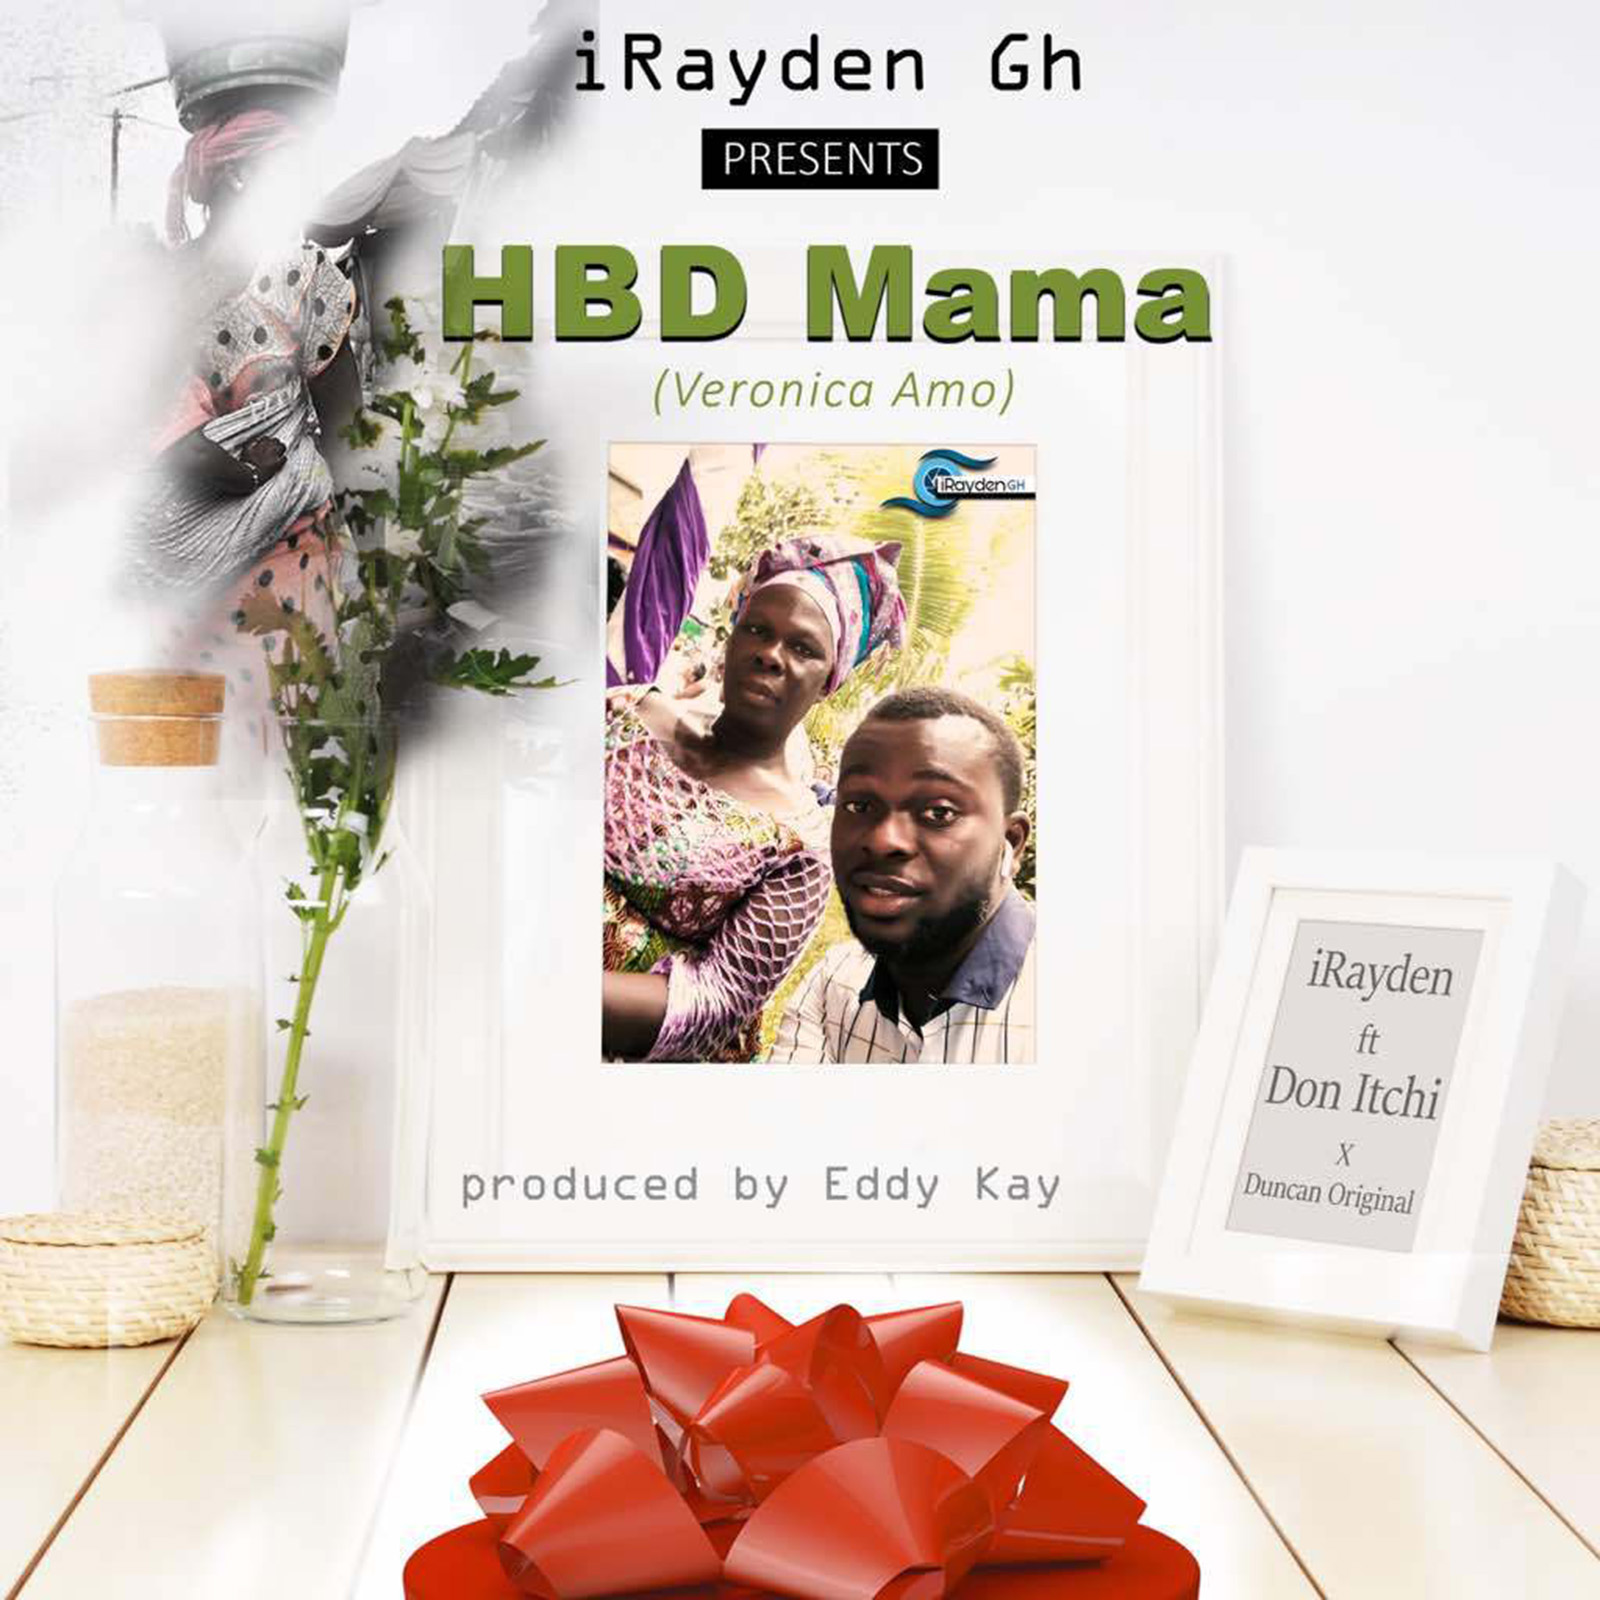 HBD Mama by iRayden feat. Don Itchi